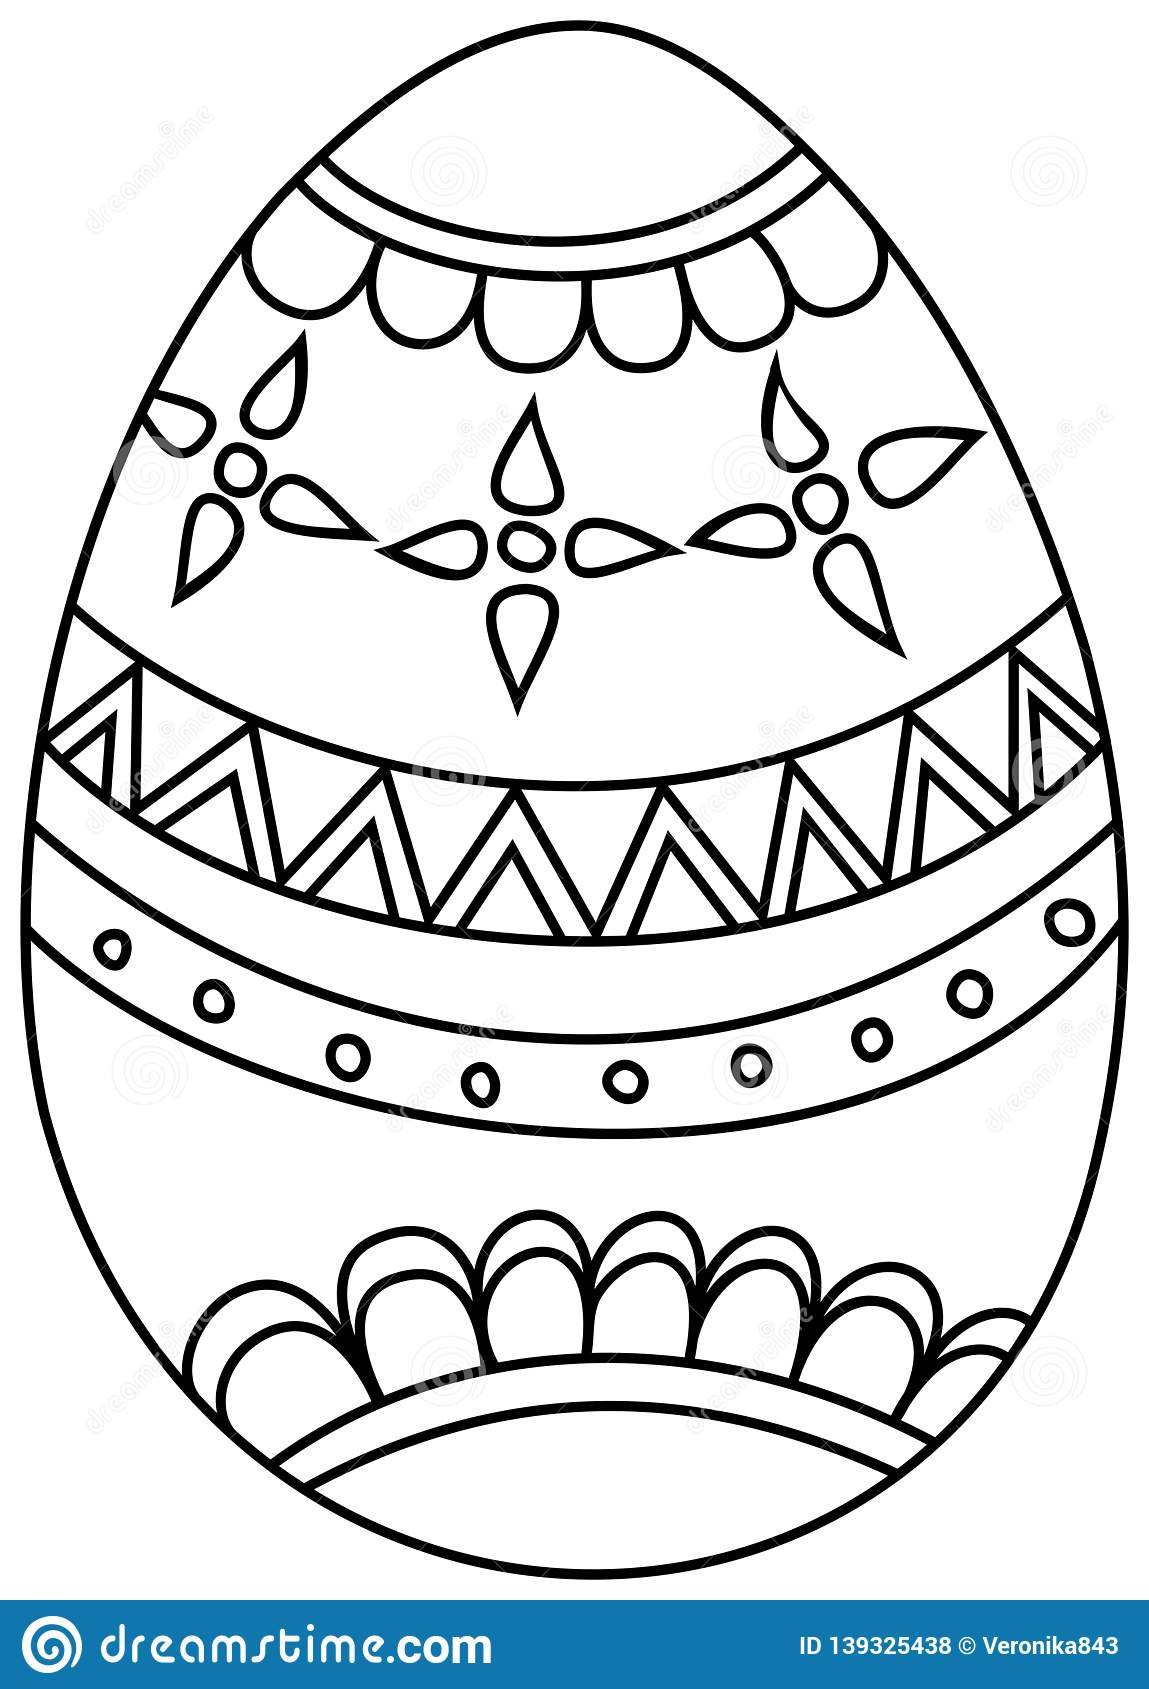 Easter Egg. Coloring Book For Kids. Hand Drawn Icon Stock Vector